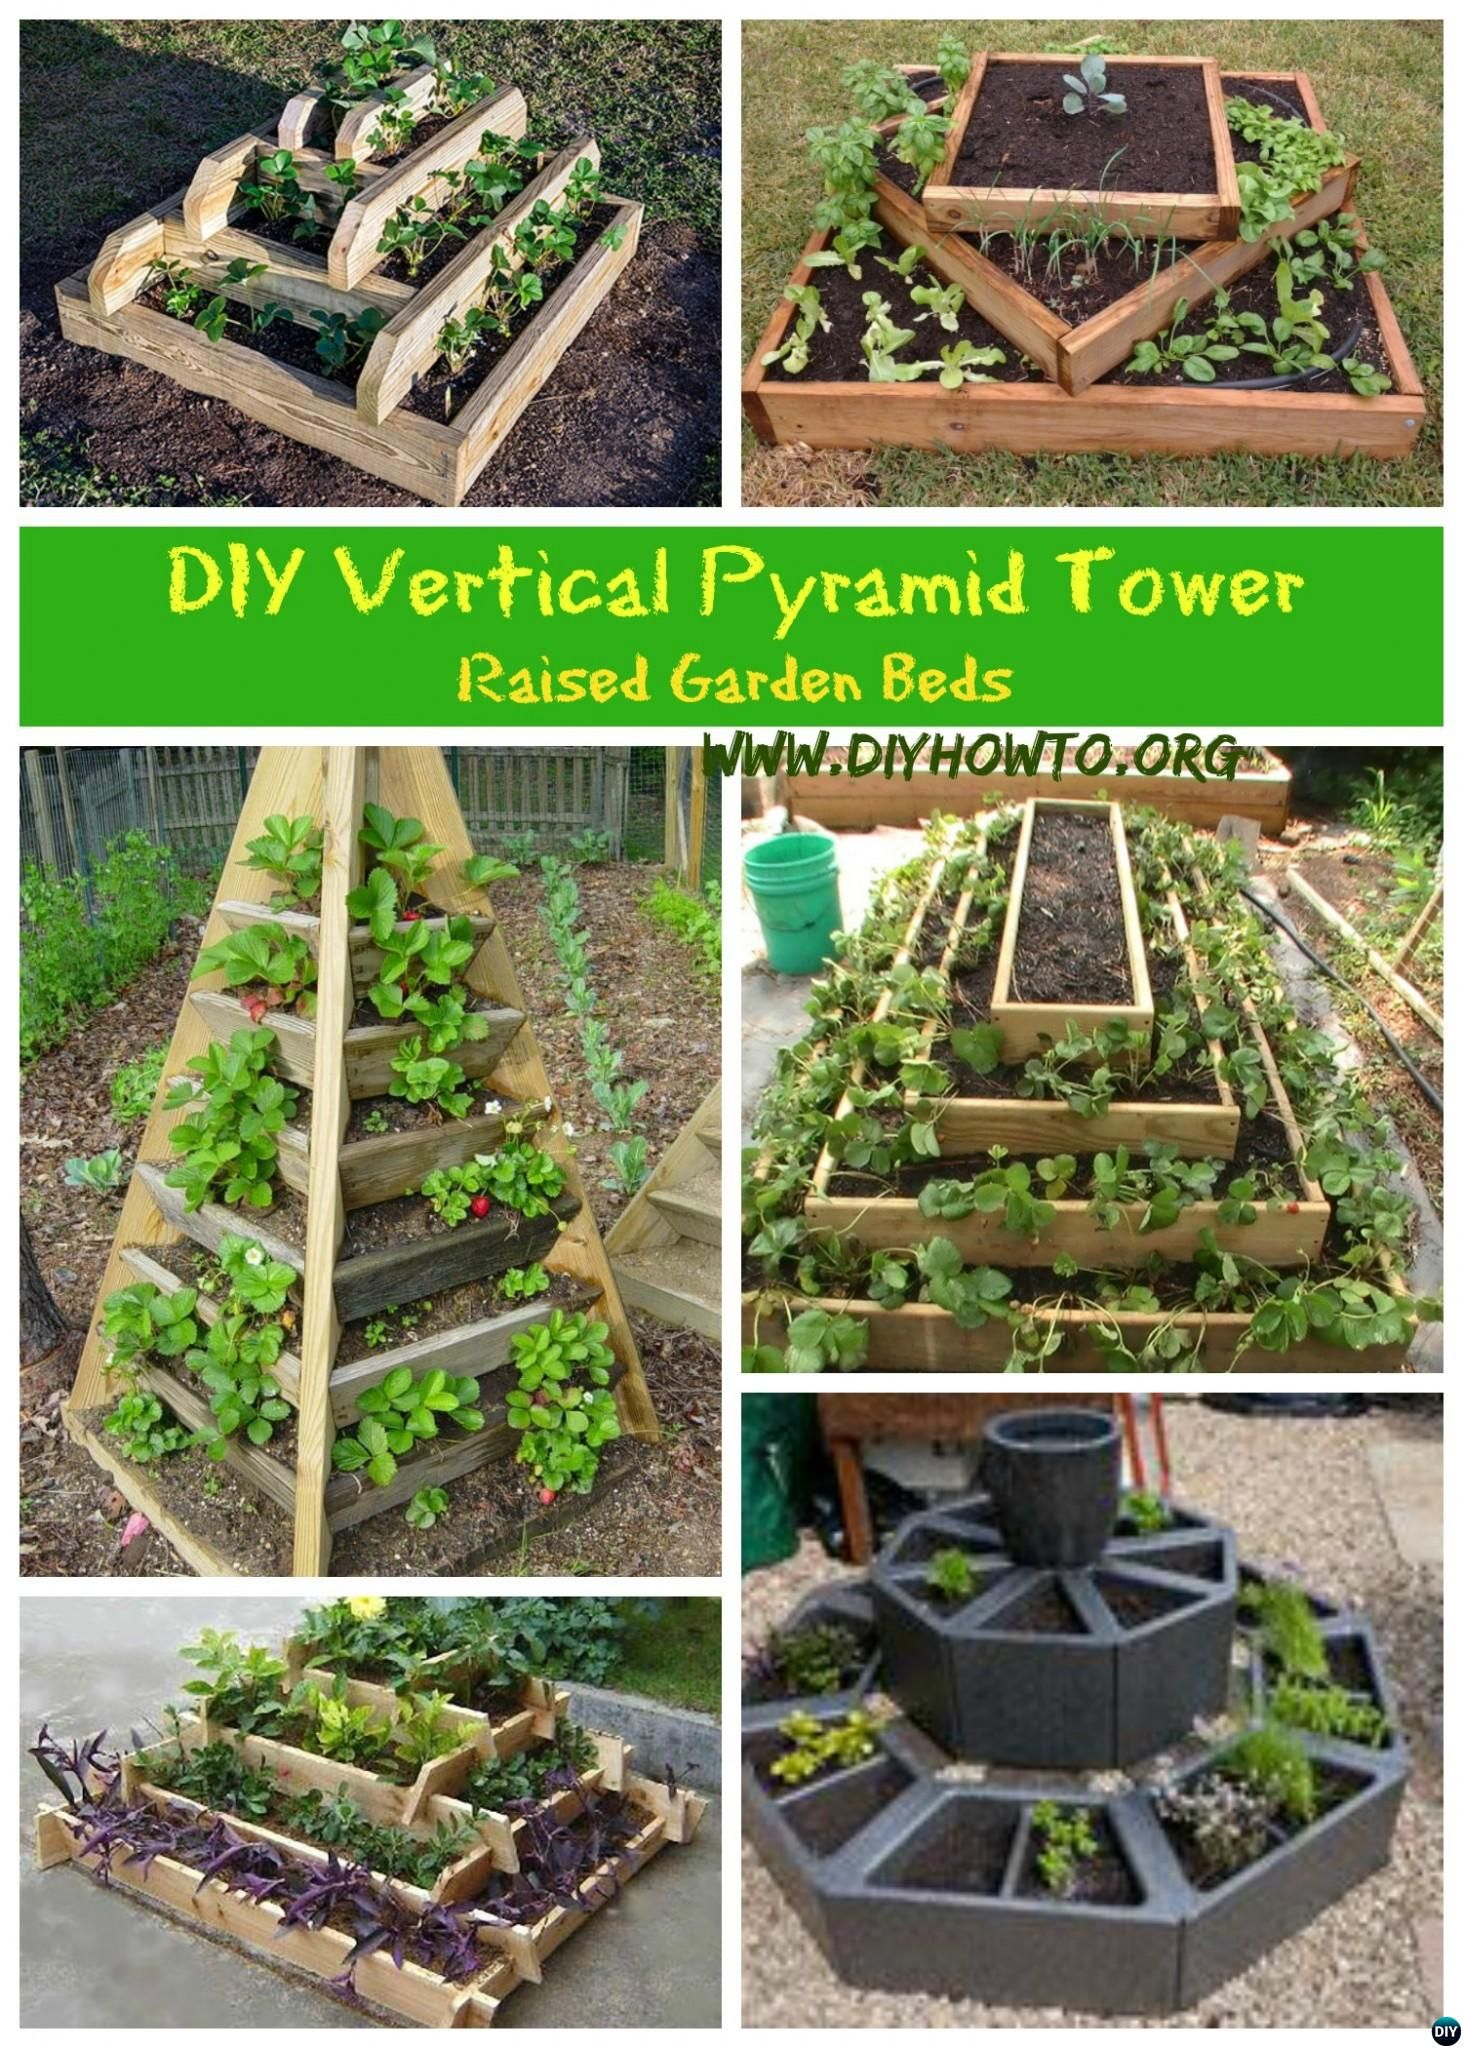 Diy vertical pyramid tower planters and raised garden beds for Vertical garden planters diy